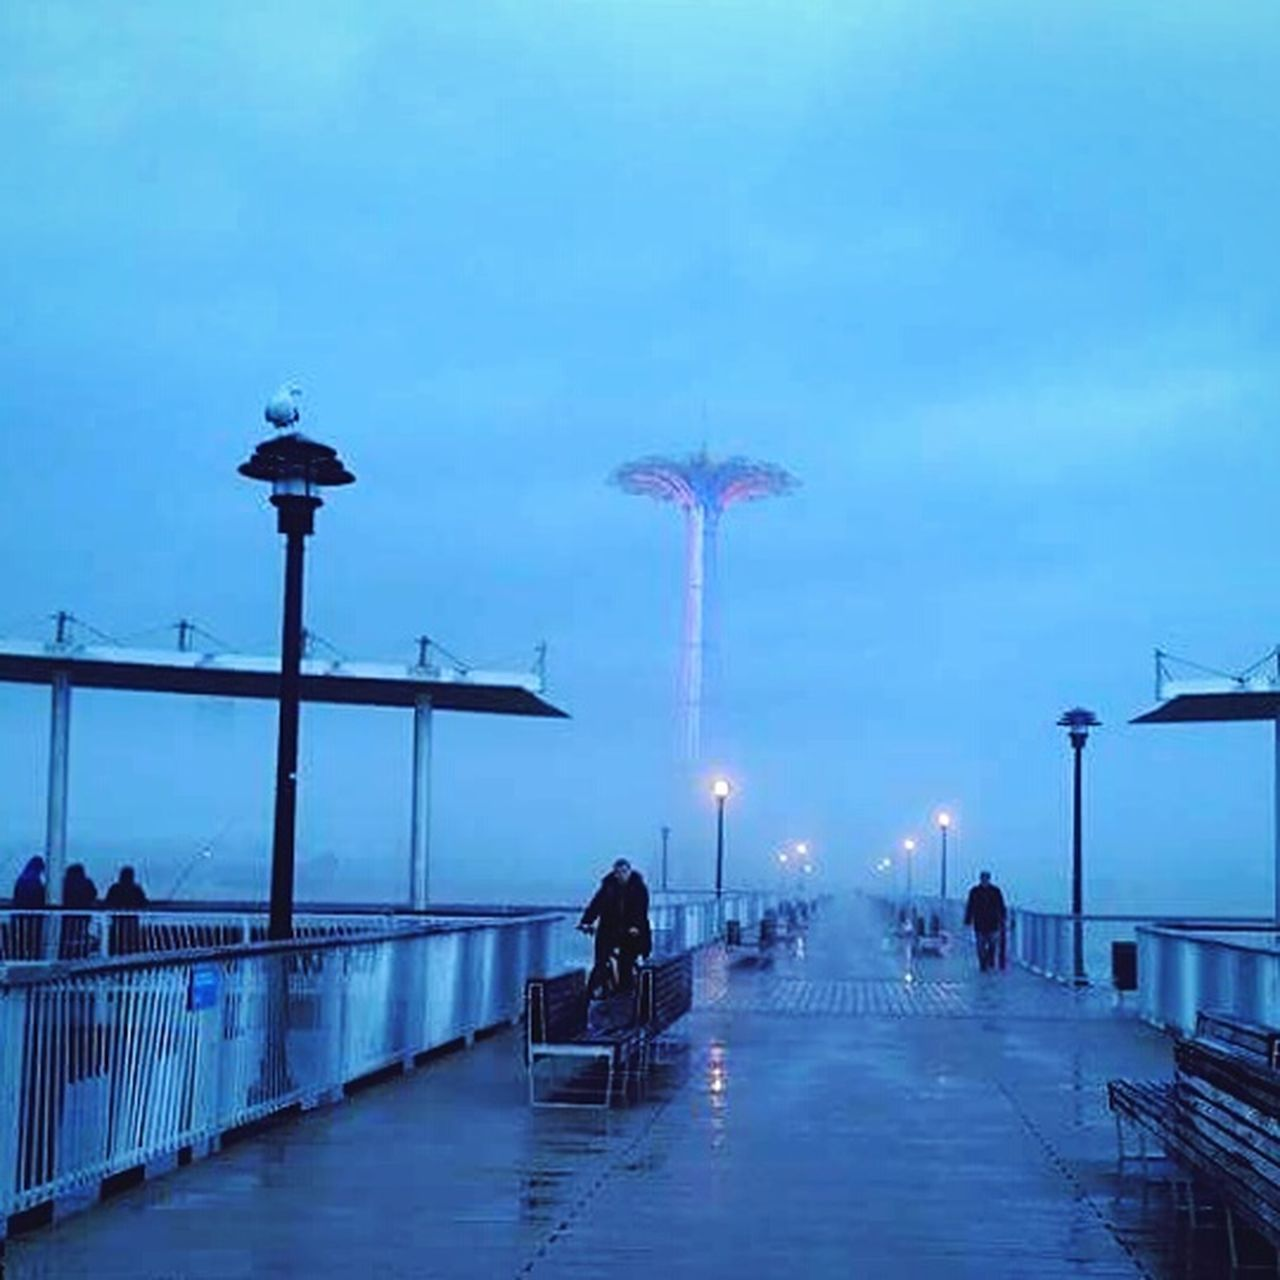 incidental people, street light, sky, lighting equipment, men, outdoors, illuminated, blue, travel destinations, night, people, bridge - man made structure, adult, adults only, standing, large group of people, women, clear sky, city, water, architecture, only men, nature, young adult, gondola - traditional boat